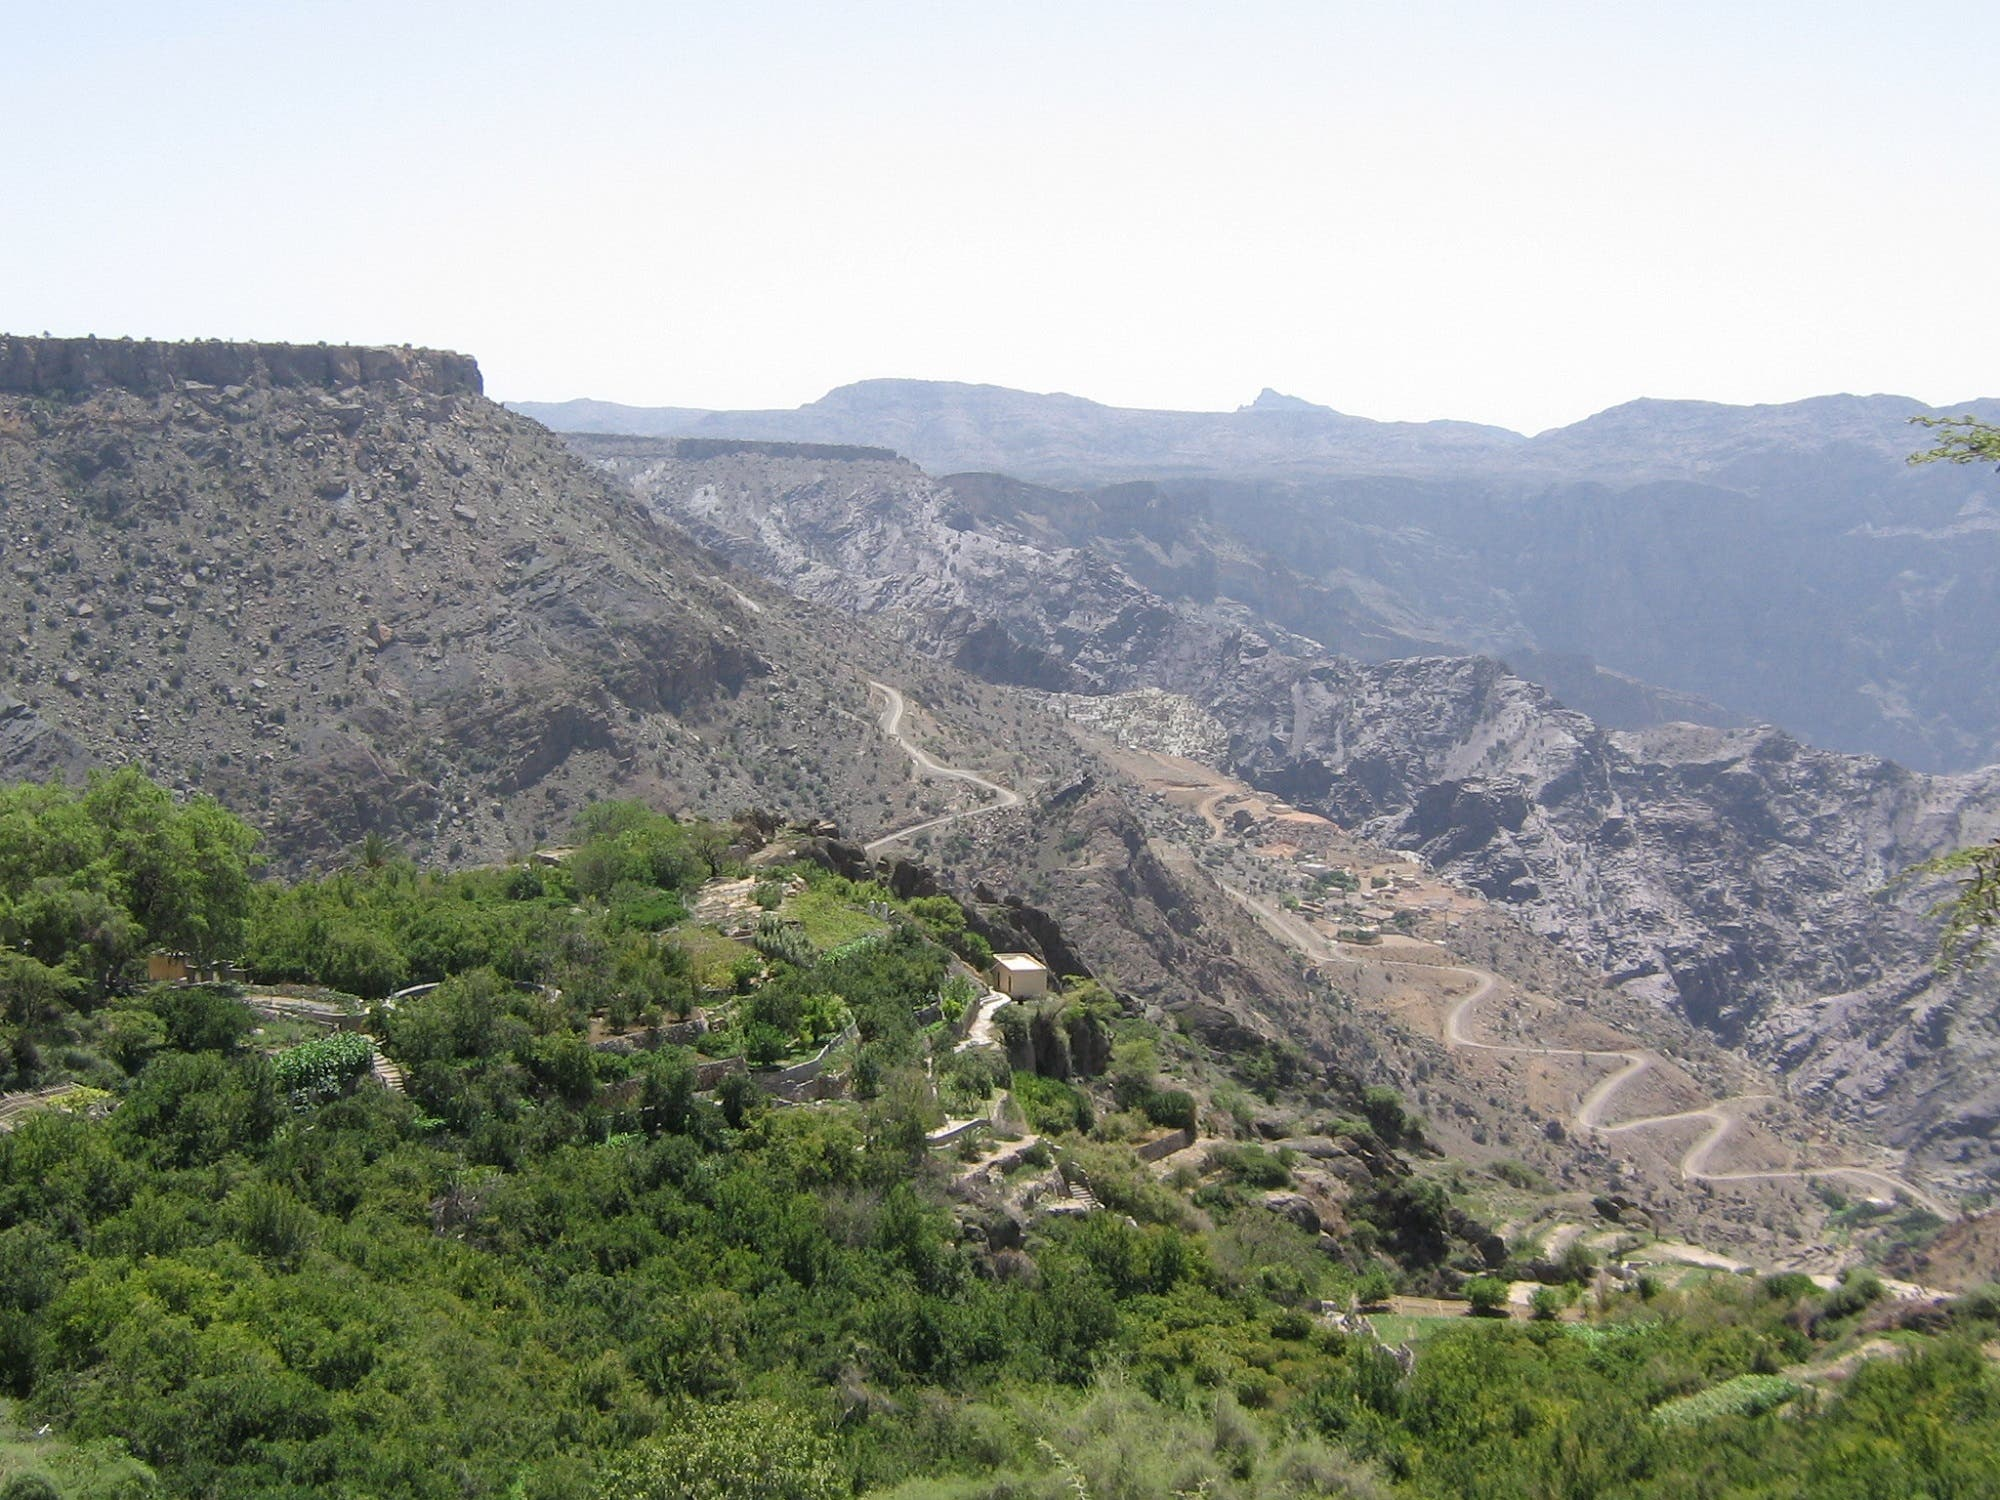 Saiq, which is Jabal al-Akhdar's main town is famous for its terraced rose gardens. (Supplied)